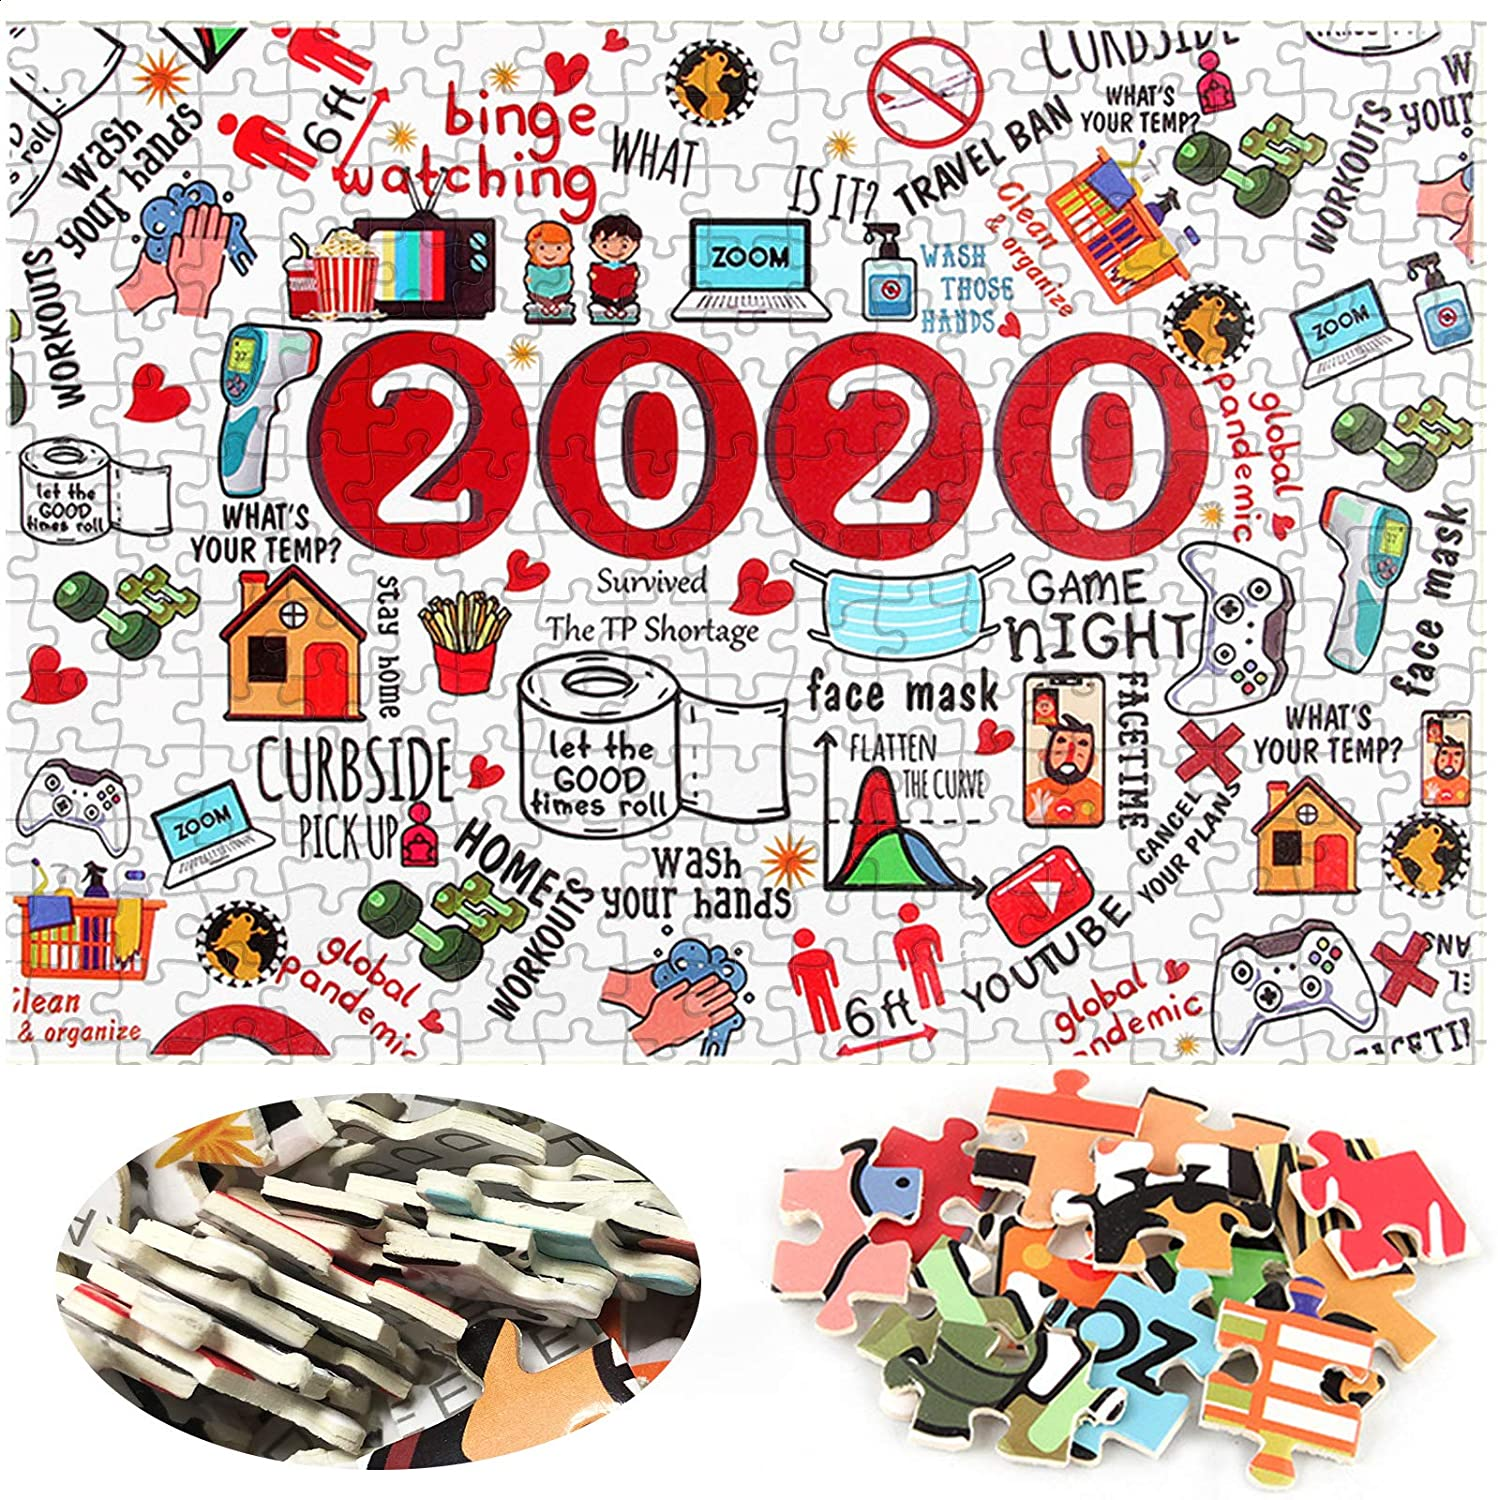 jigsaw black 2mm Jigsaw Puzzles 2020, Jigsaw Puzzles 1000 Pieces, Jigsaw Puzzle for Adult 1000 Pieces, Thick Paper Jigsaw Puzzles Game Gift f